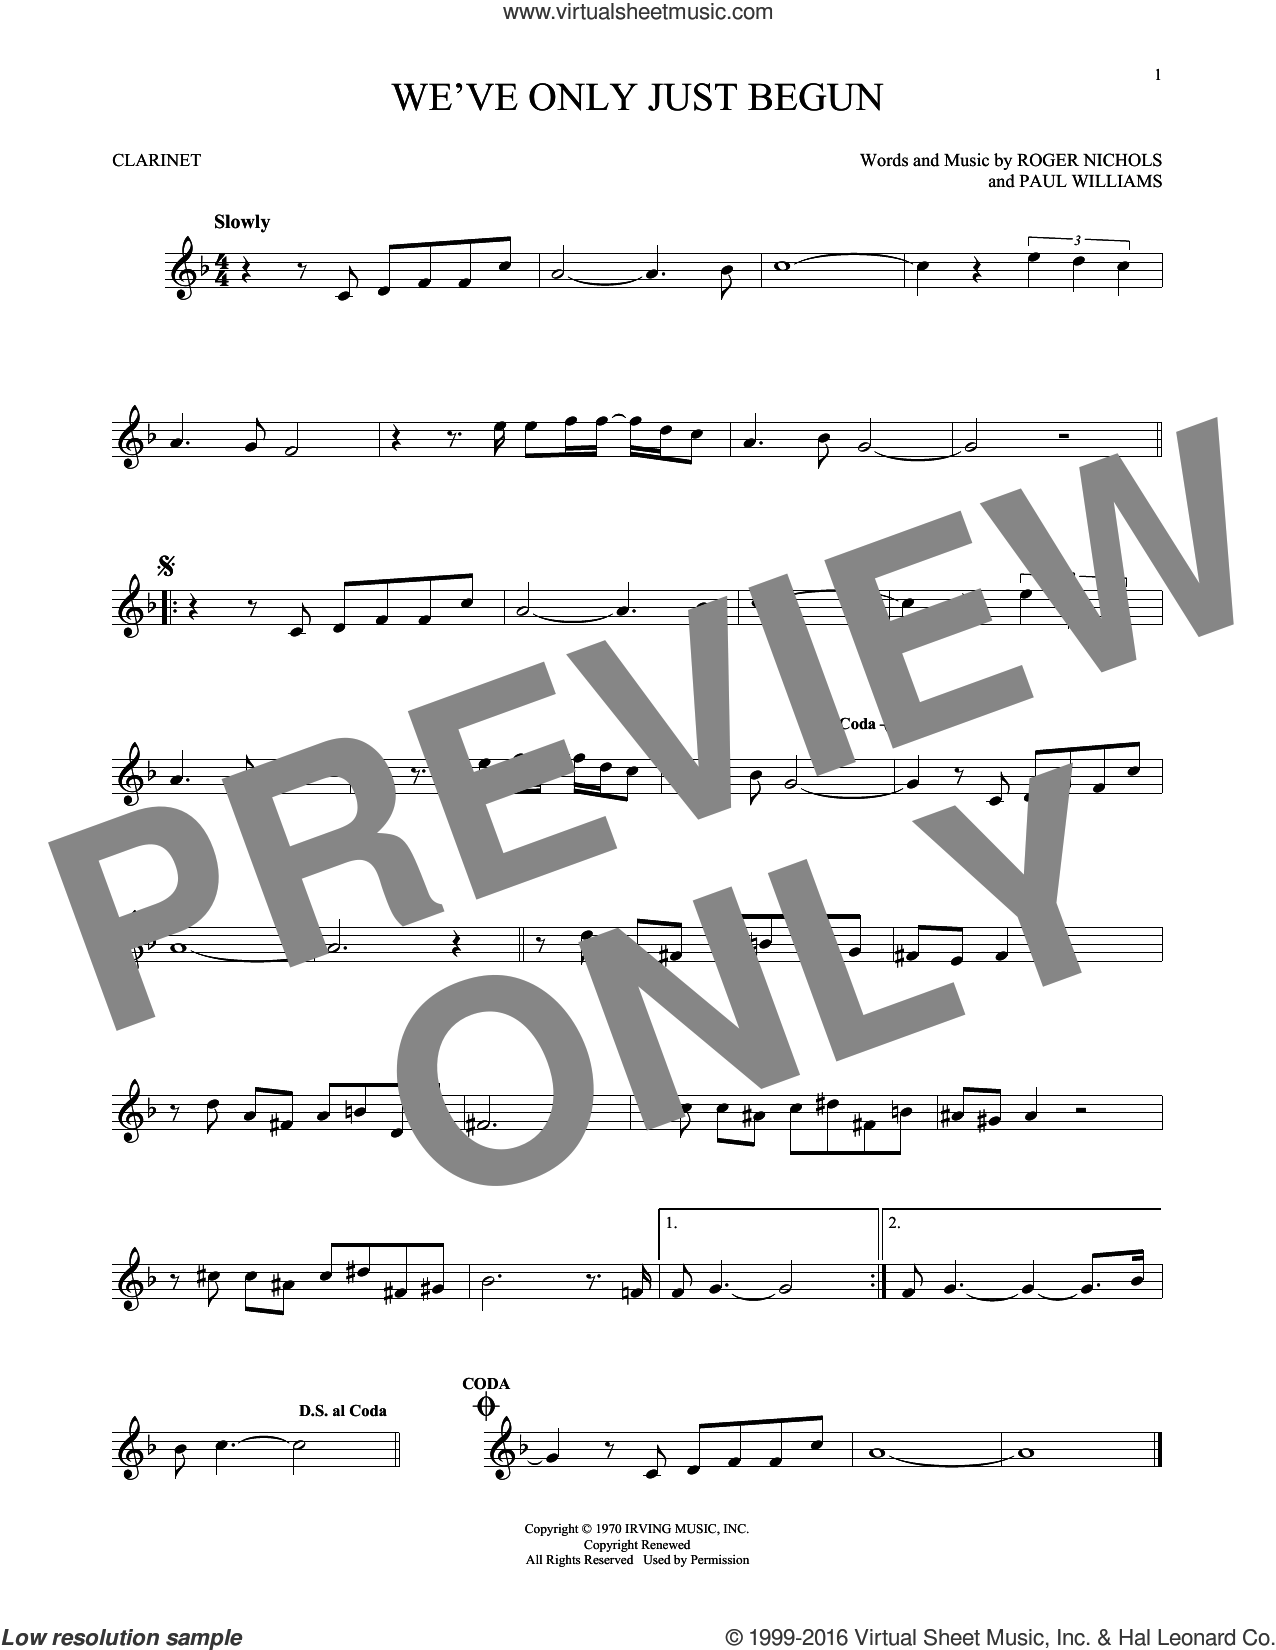 We've Only Just Begun sheet music for clarinet solo by Paul Williams, Carpenters and Roger Nichols, intermediate skill level